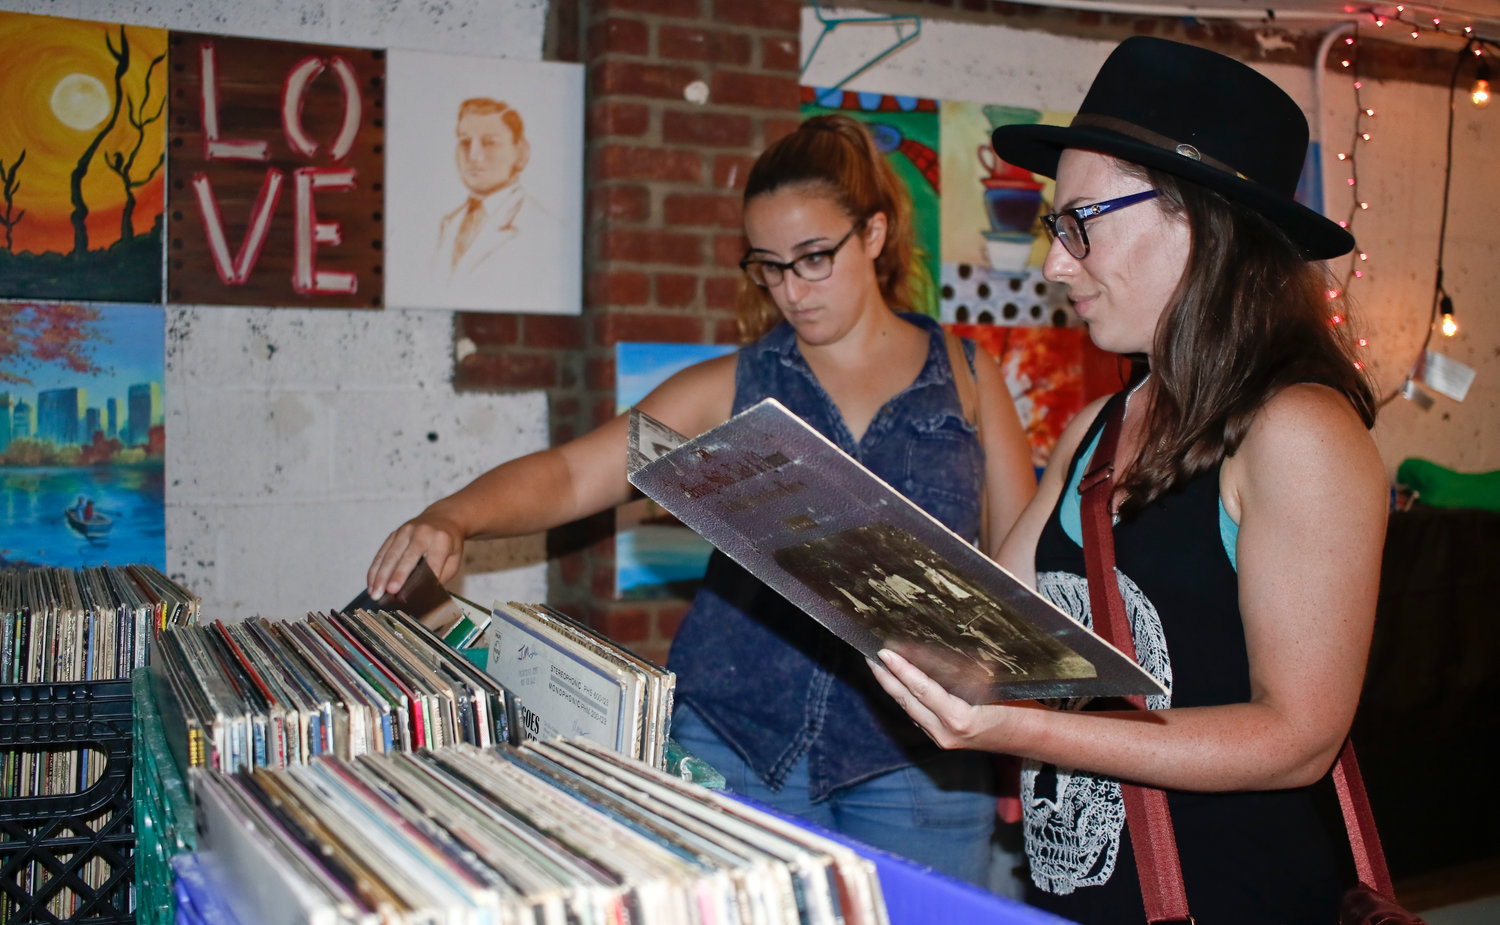 Dawn Buscemi checked out a Crosby, Stills, Nash & Young record while her friend, Liz Pasipanki, browsed through the rest of the collection during Creative Corner's Woodstock festival last Sunday.